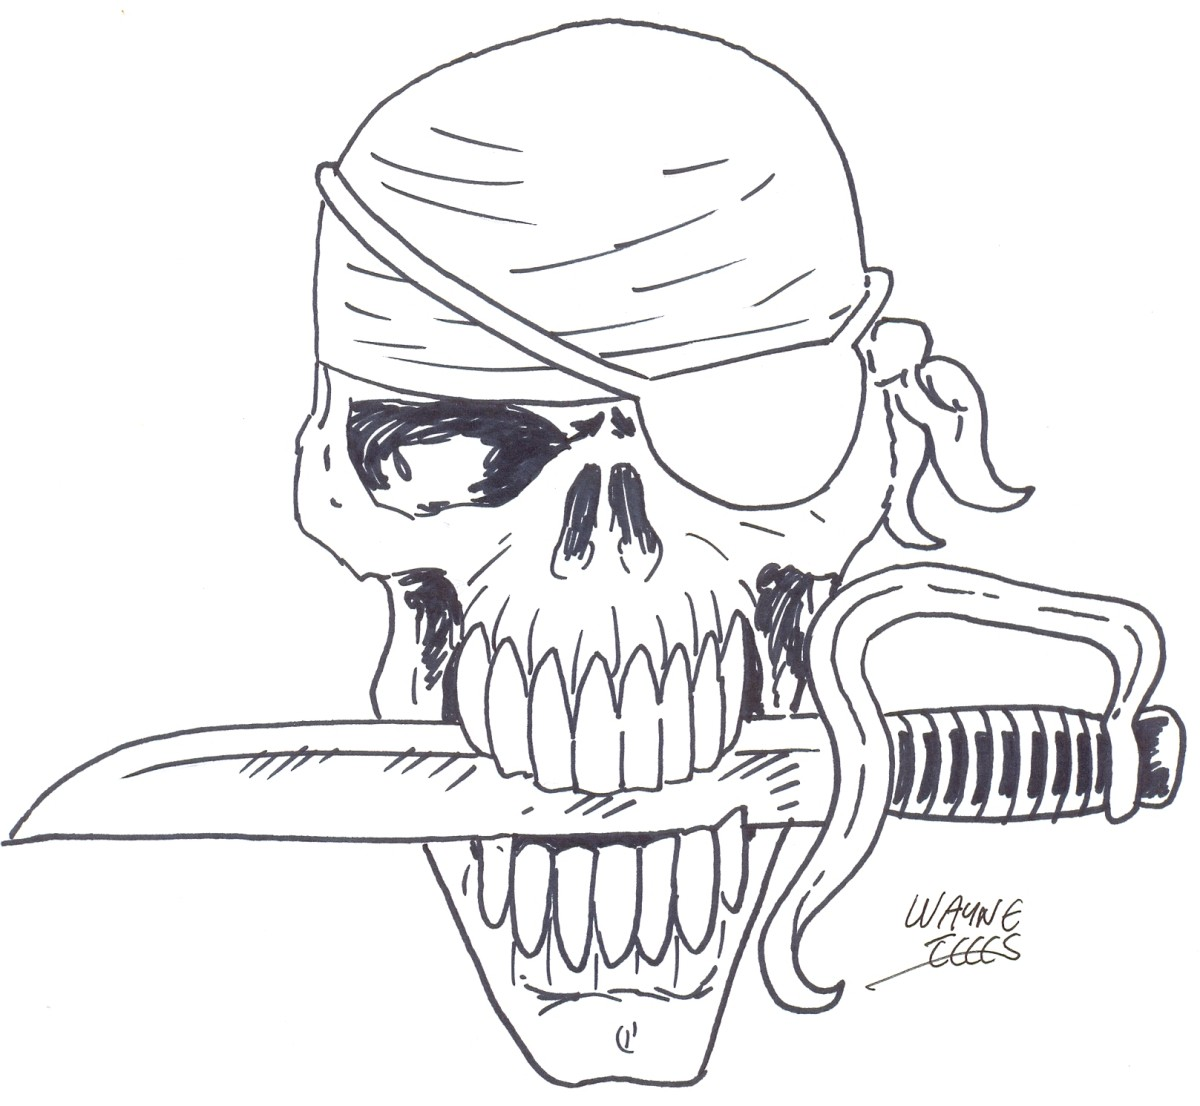 Learn how to draw a pirate skull step four - applying ink with some gel ink pens or whatever you want.    Pirate skull art Copyright Wayne Tully 2010.